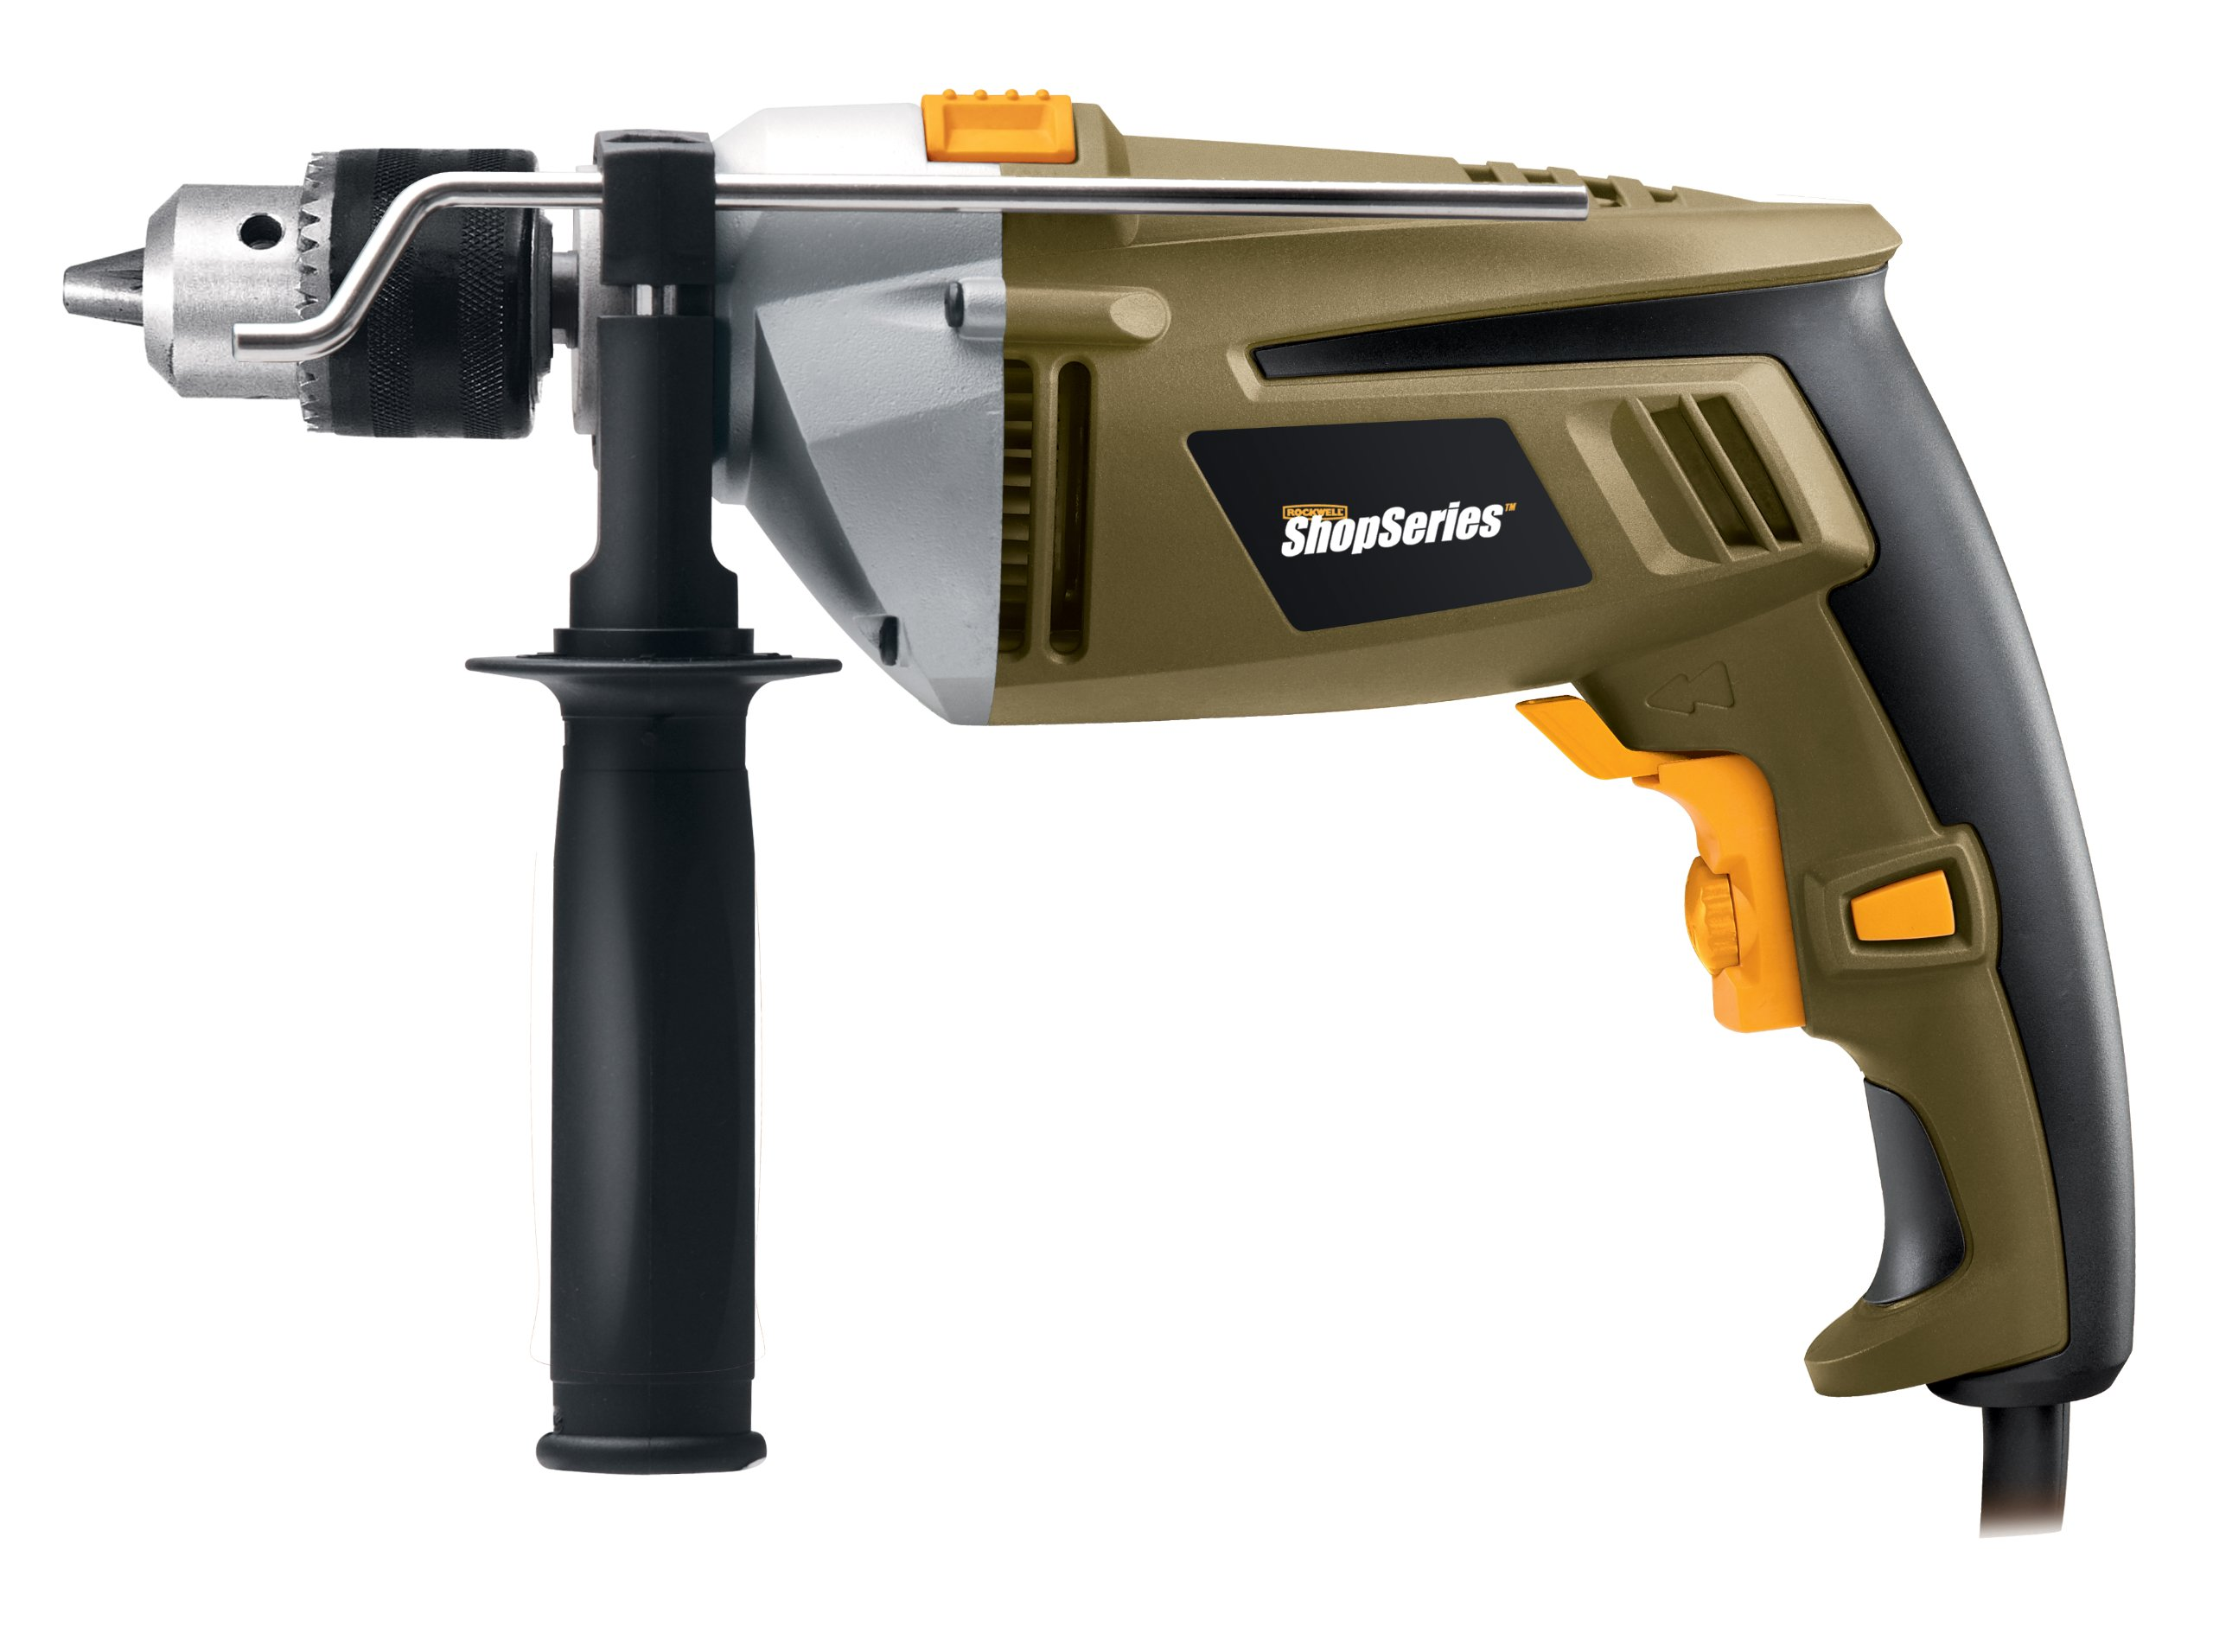 ShopSeries RC3136 7-Amp 1/2'' Hammer Drill